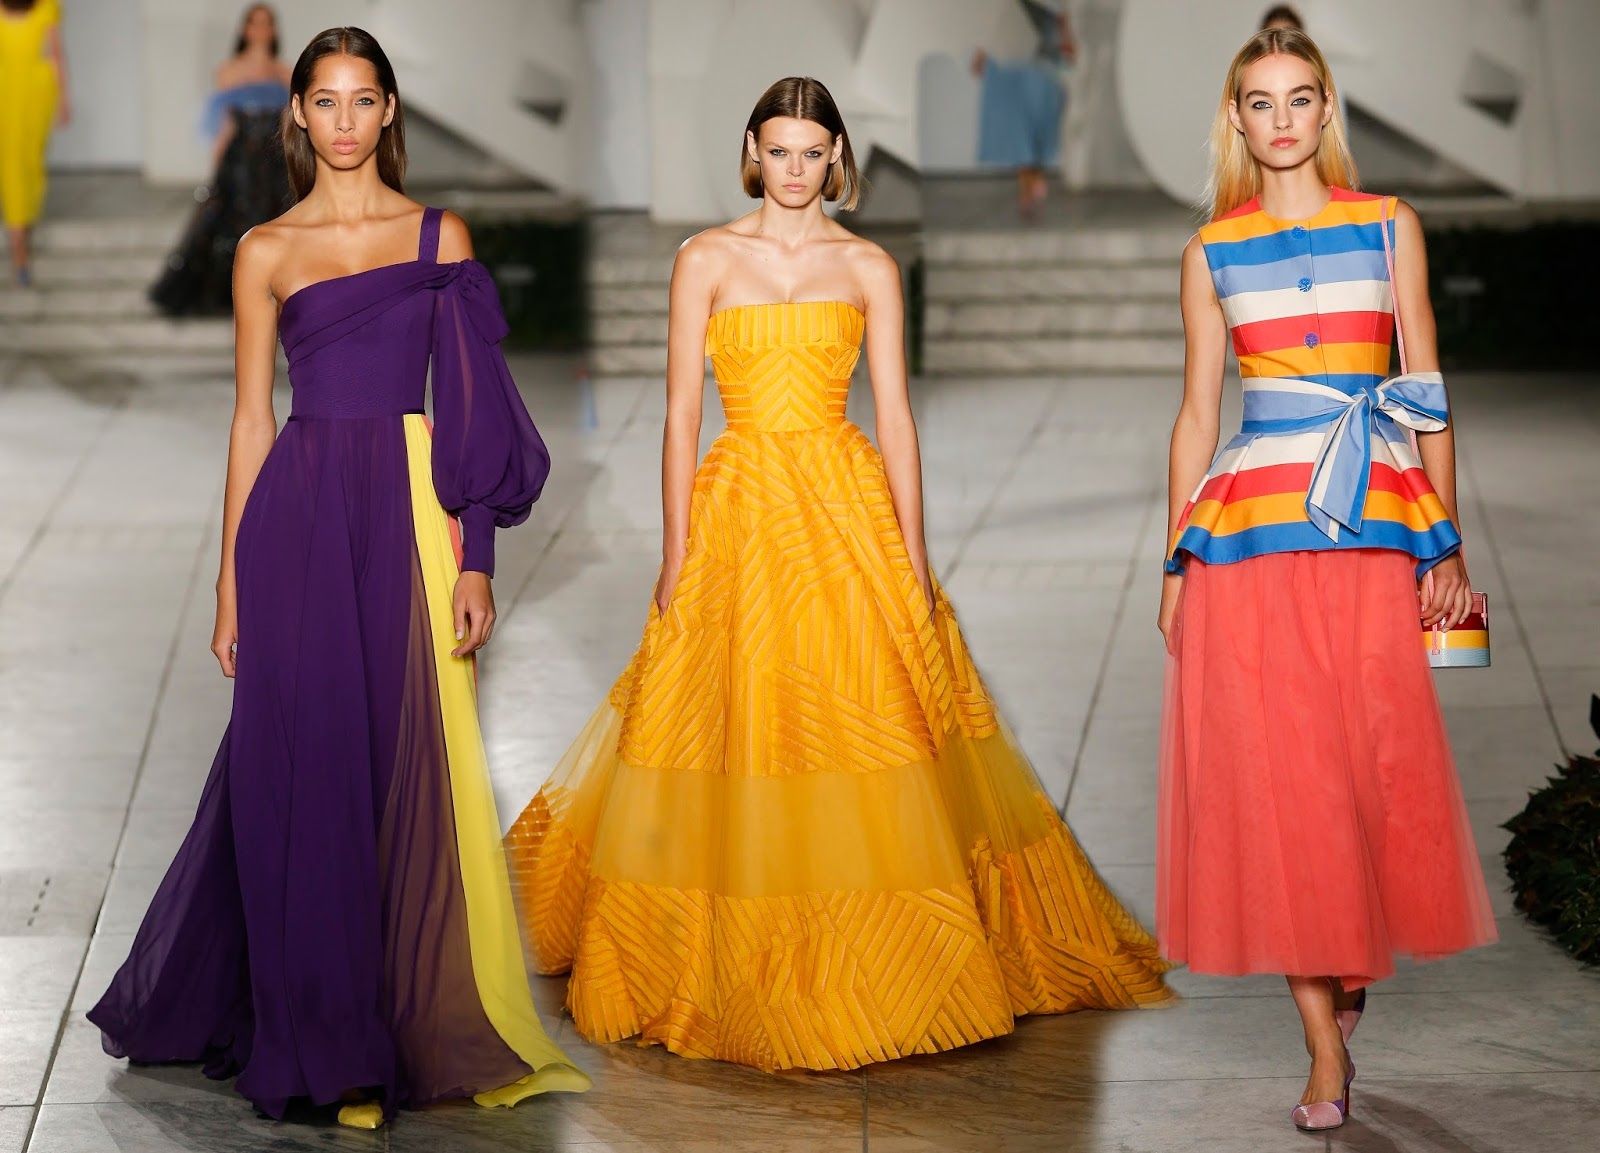 Carolina herrera spring 2018 fashion show 31